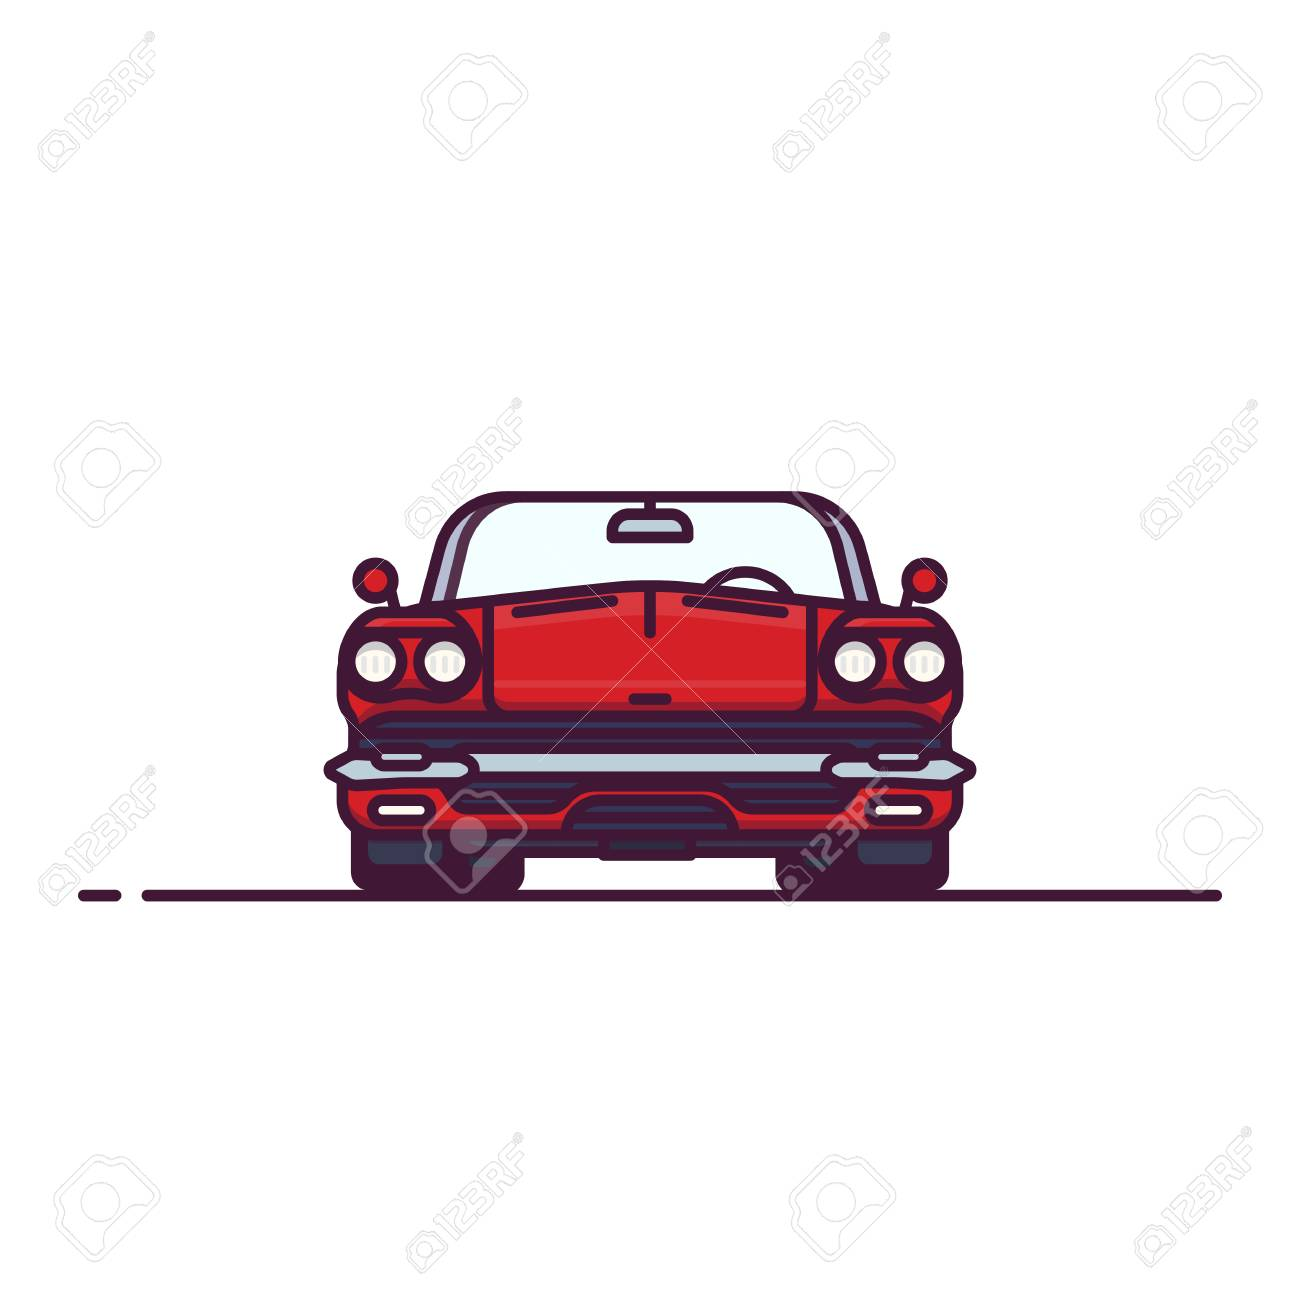 Front View Of Red Muscle Sport Car With Convertible Hood Cabriolet Royalty Free Cliparts Vectors And Stock Illustration Image 111881632